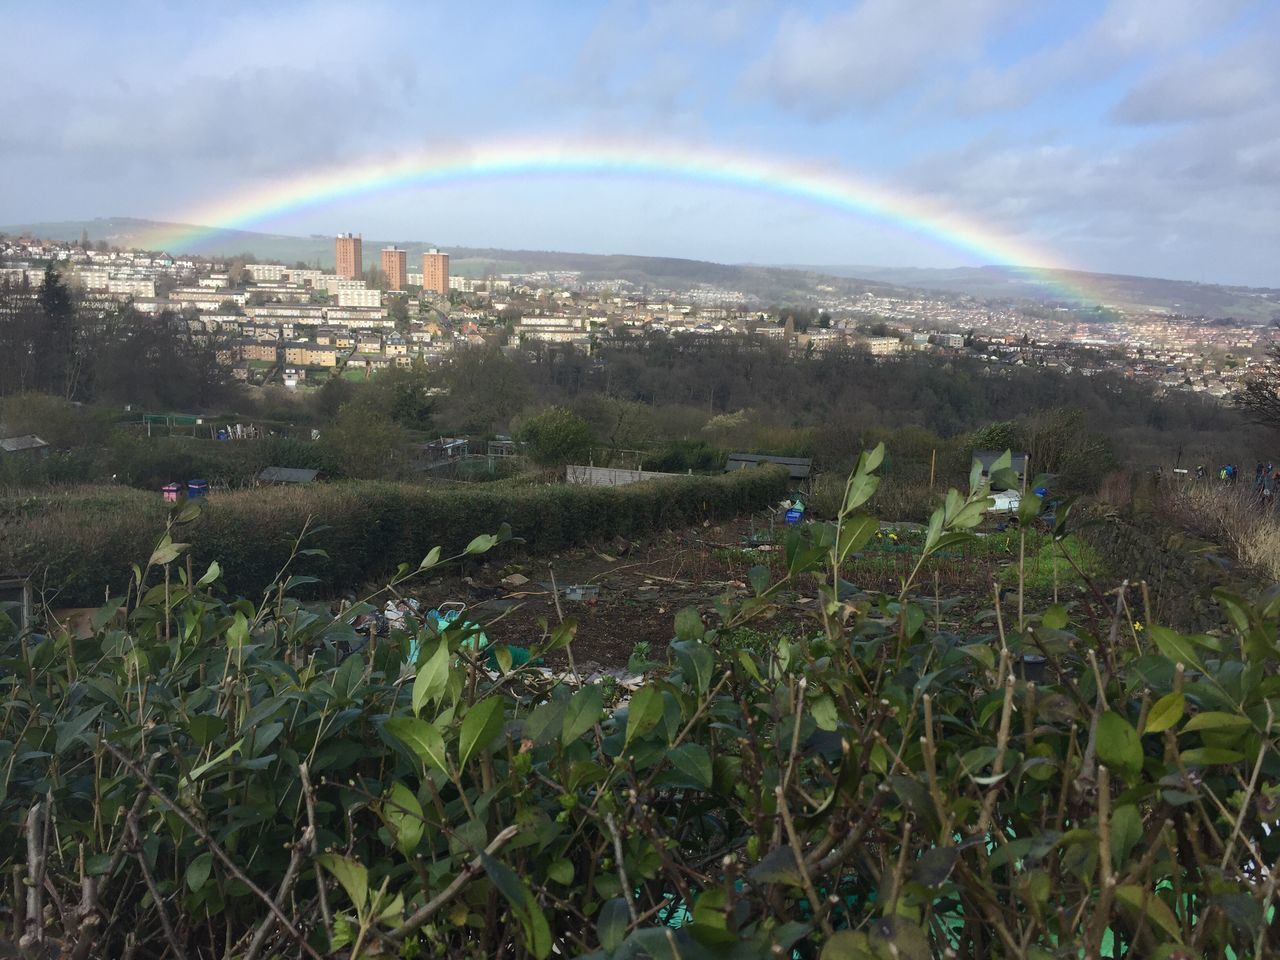 Allotment life.... Building Exterior Built Structure Architecture City Cityscape Sky Tree Double Rainbow Beauty In Nature Scenics Nature Outdoors Growth Landscape No People Day Rainbow Sheffield